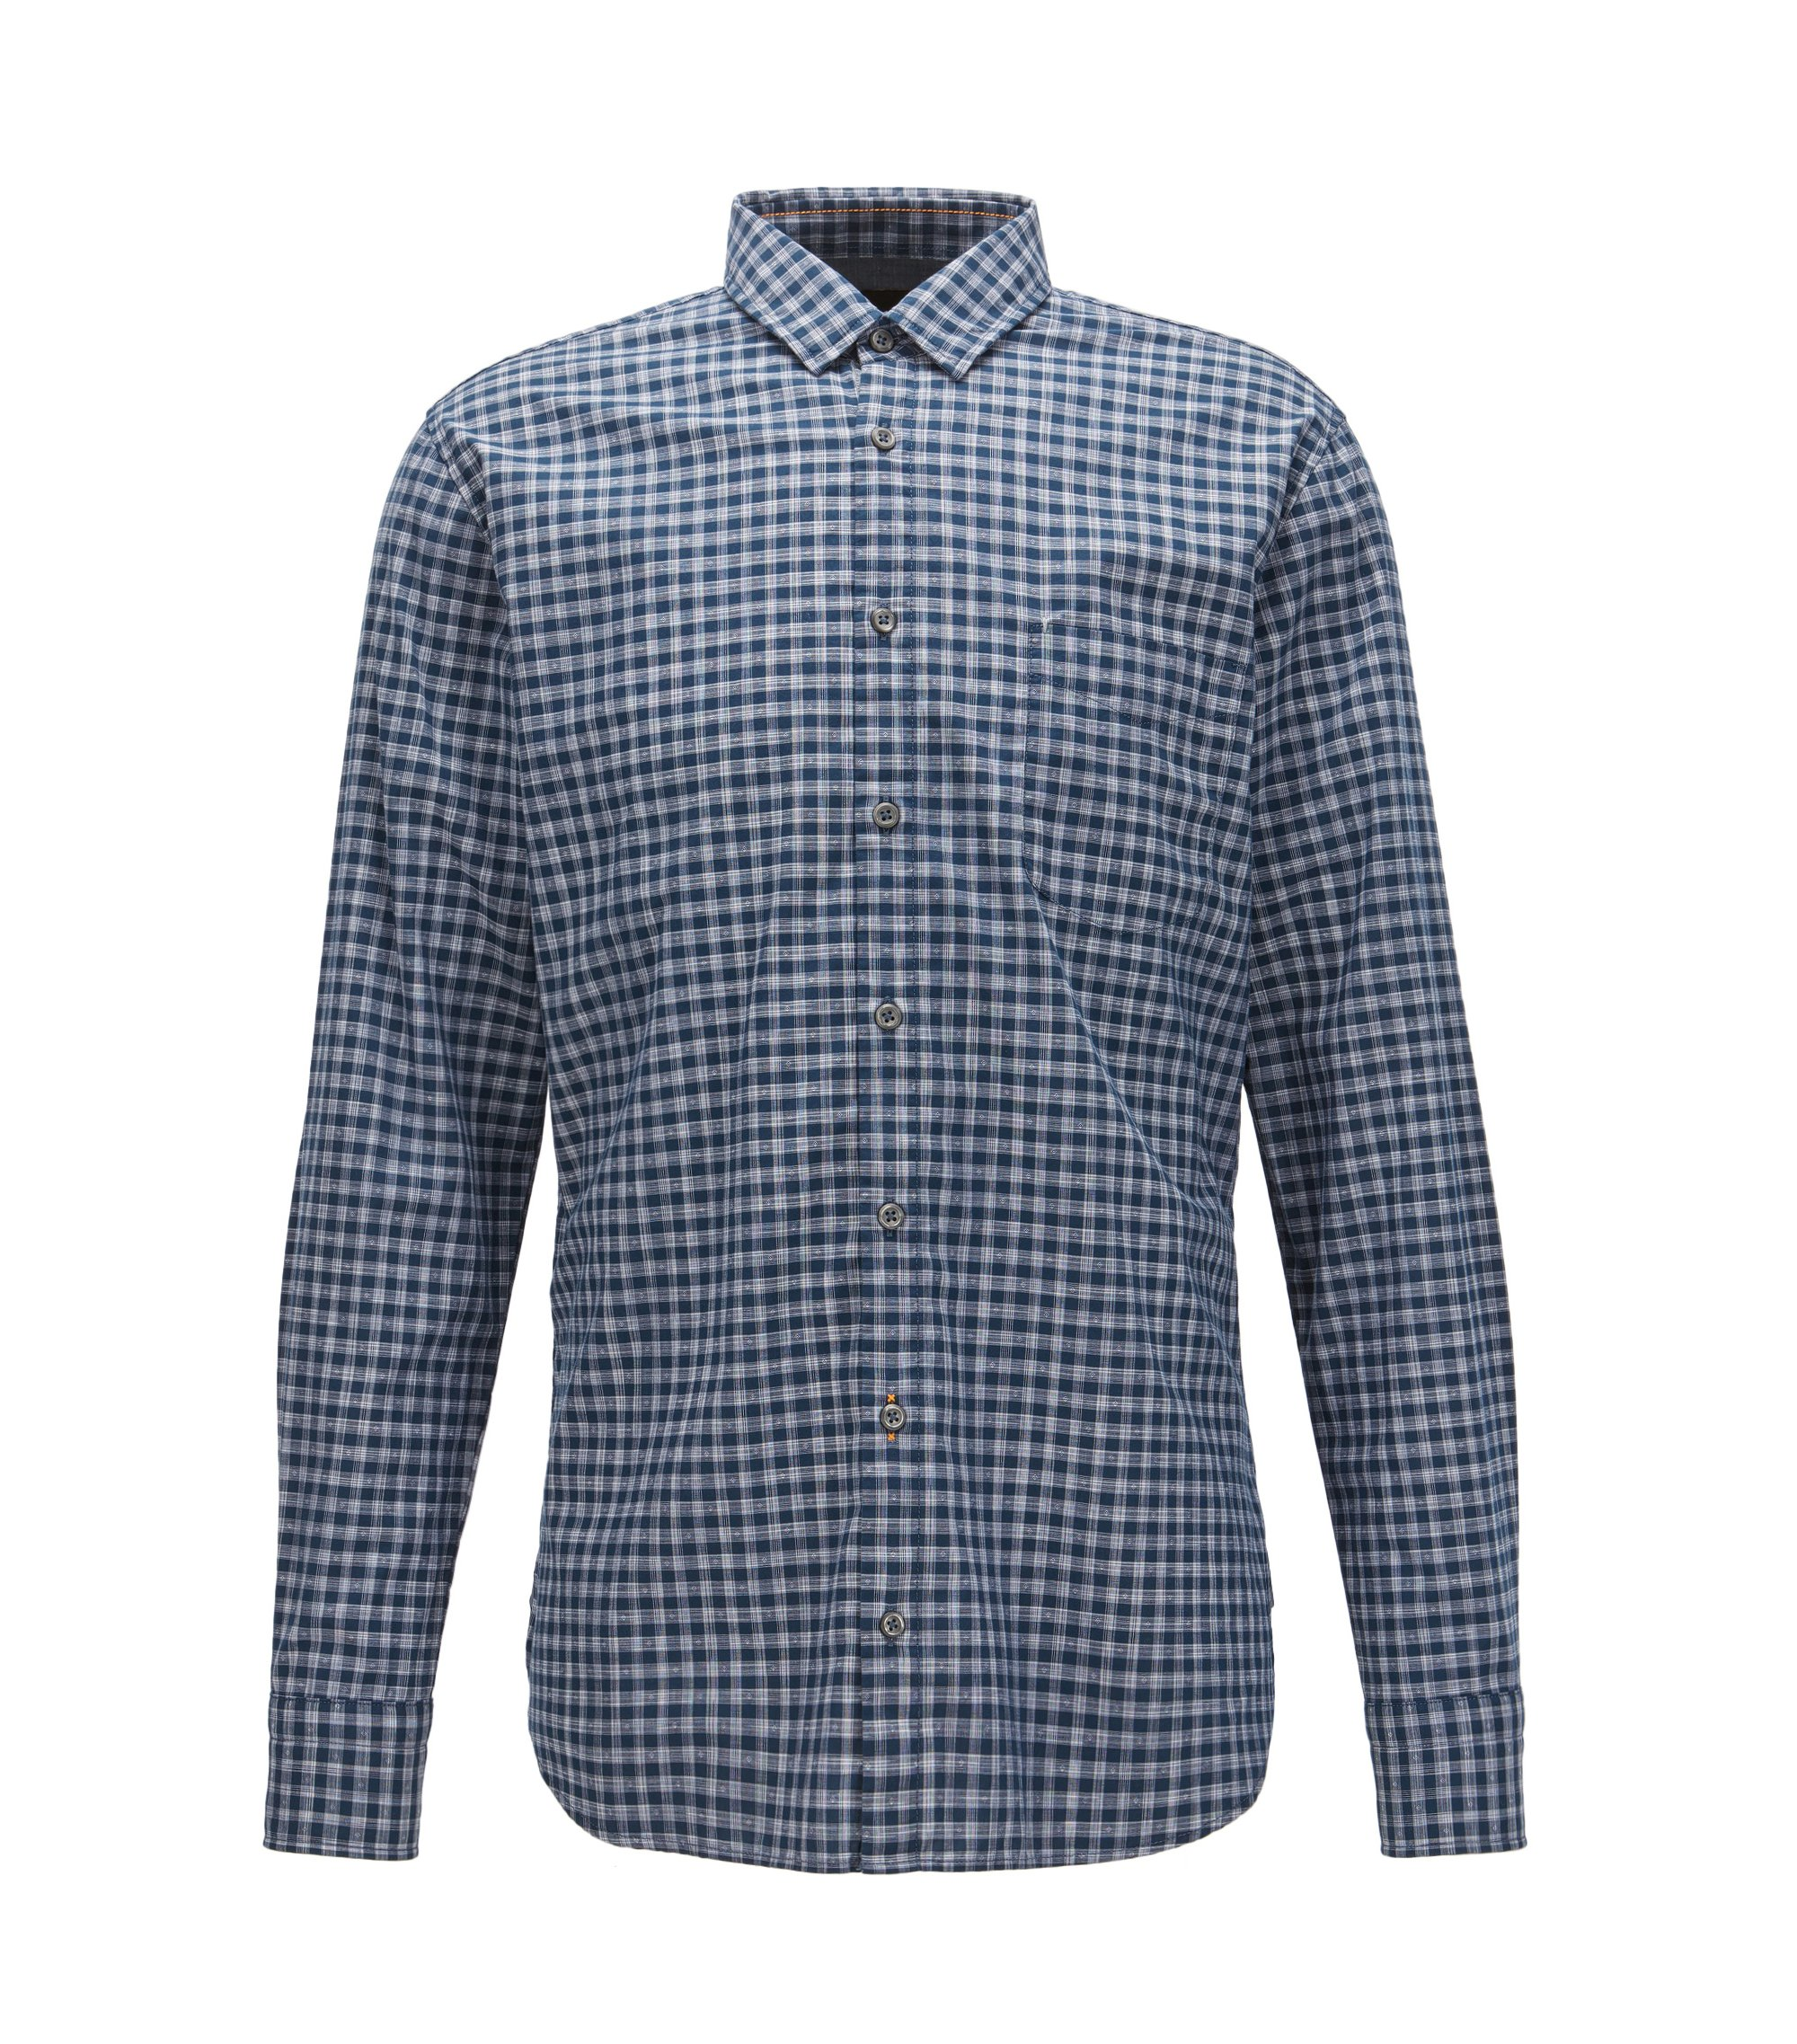 Vichy-check cotton shirt in a slim fit, Dark Blue